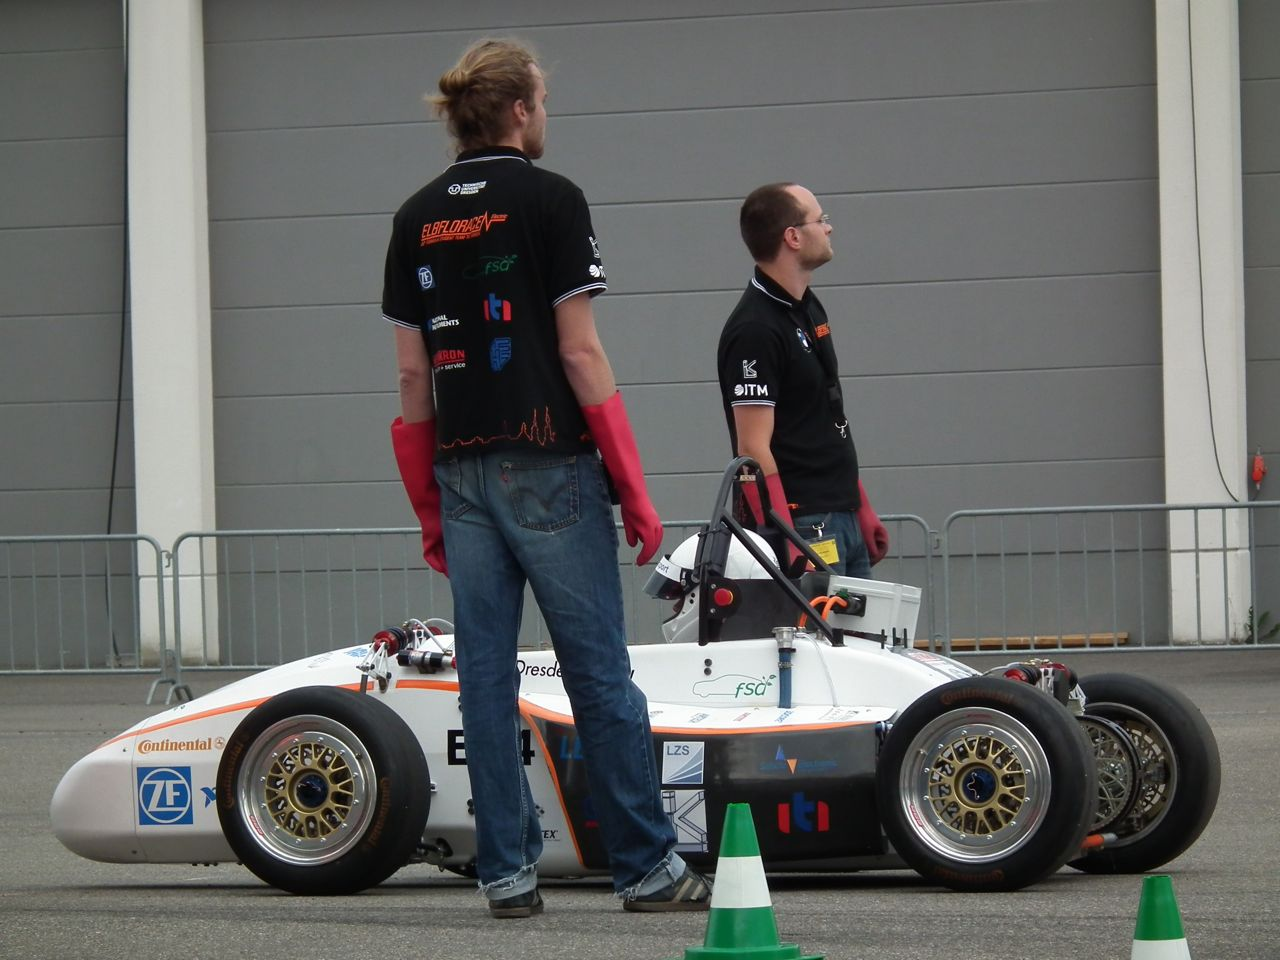 zf_racecamp_201107